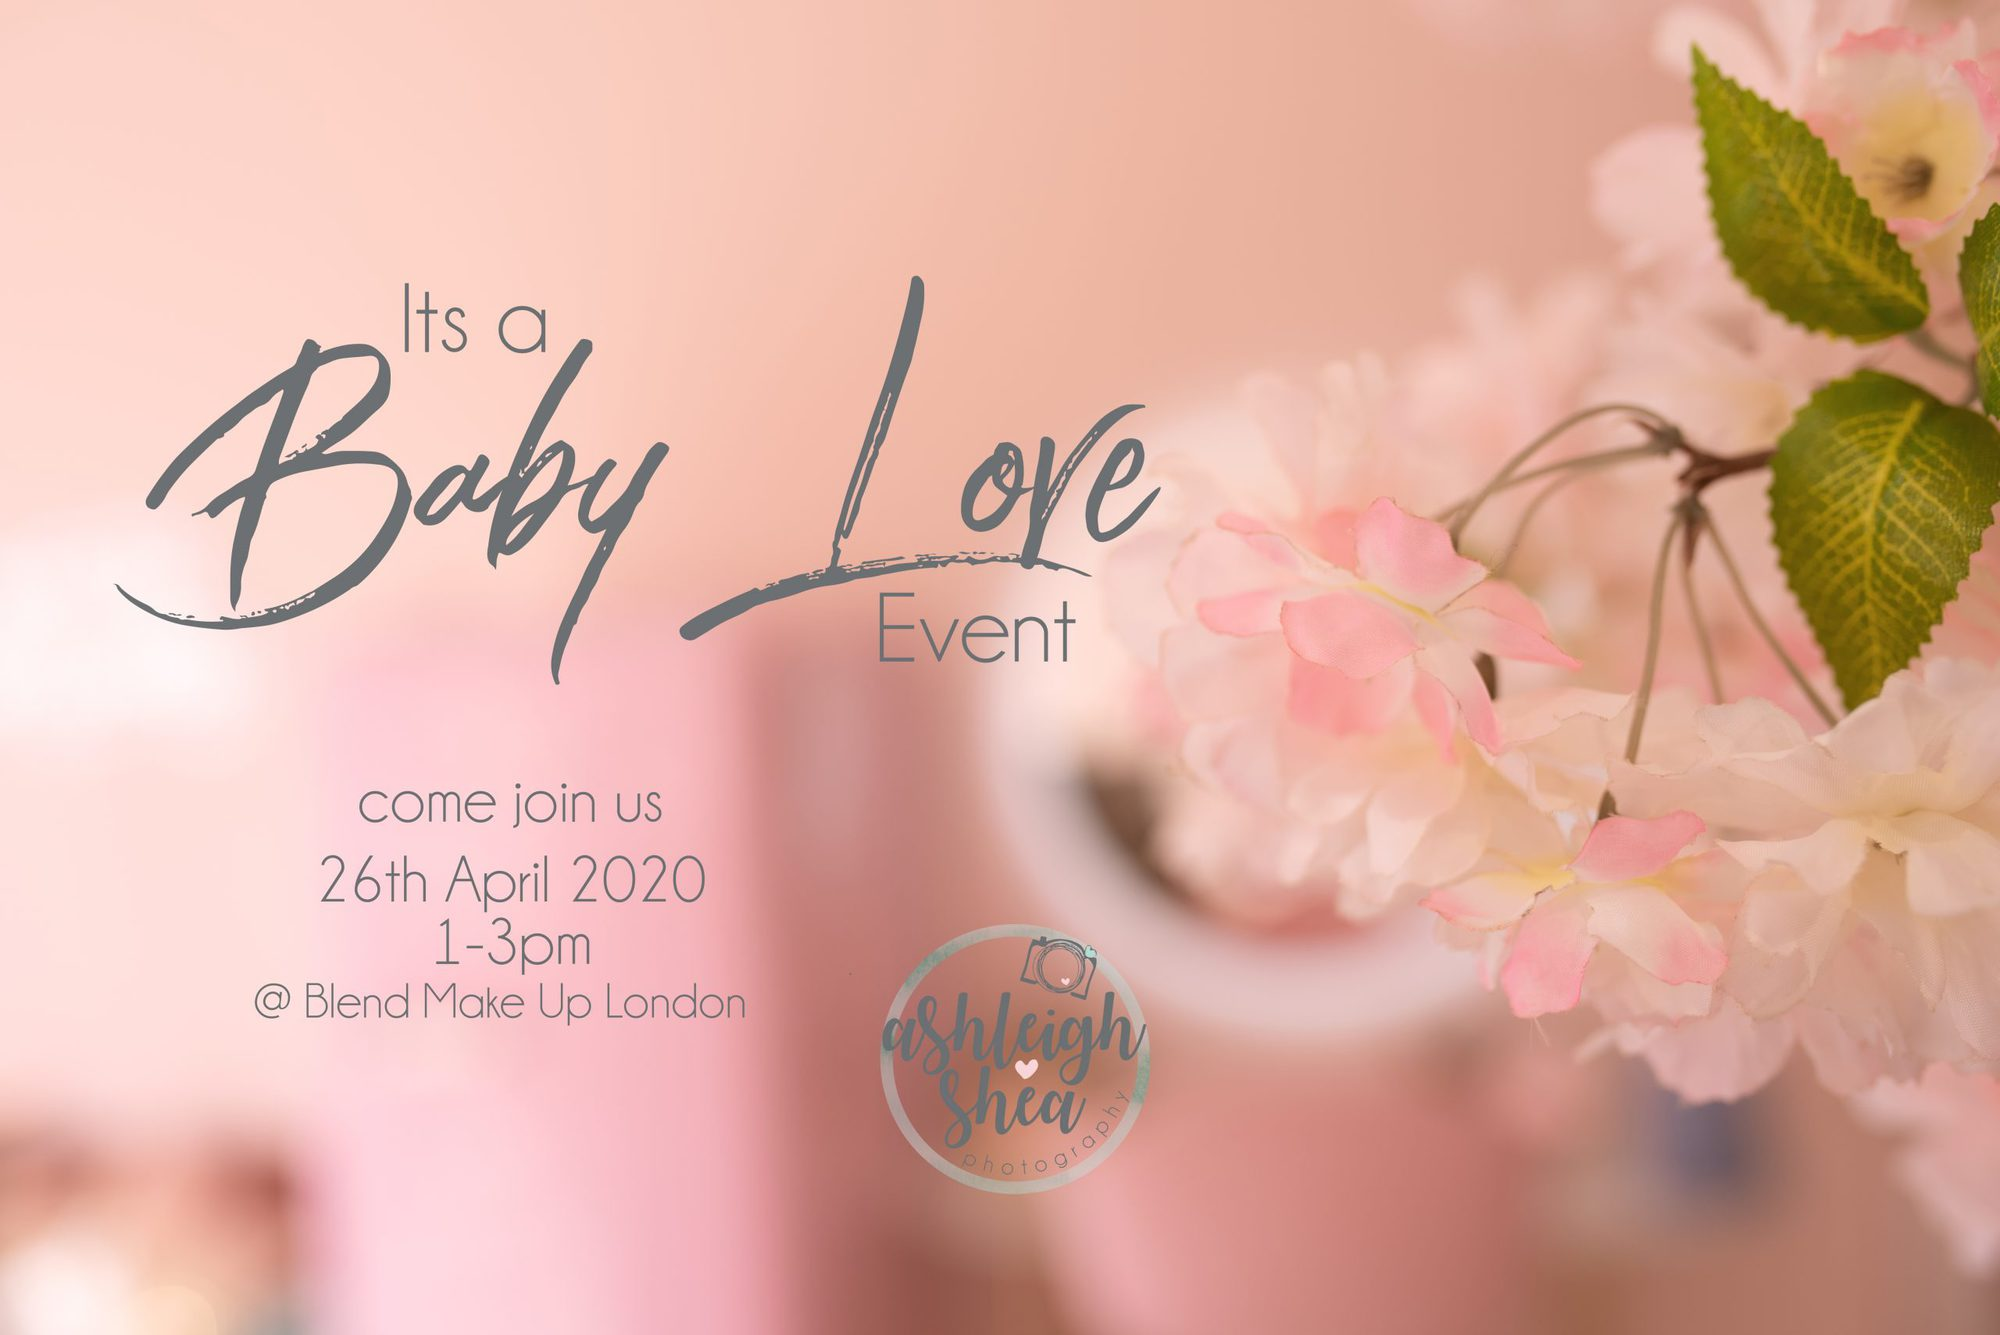 Baby Love, Mum To Be, Maternity Portraits, Pregnancy Pictures, Pregnant, Ashleigh Shea Photography, Blend Make Up London, Bromley, Sidcup, London,Kent